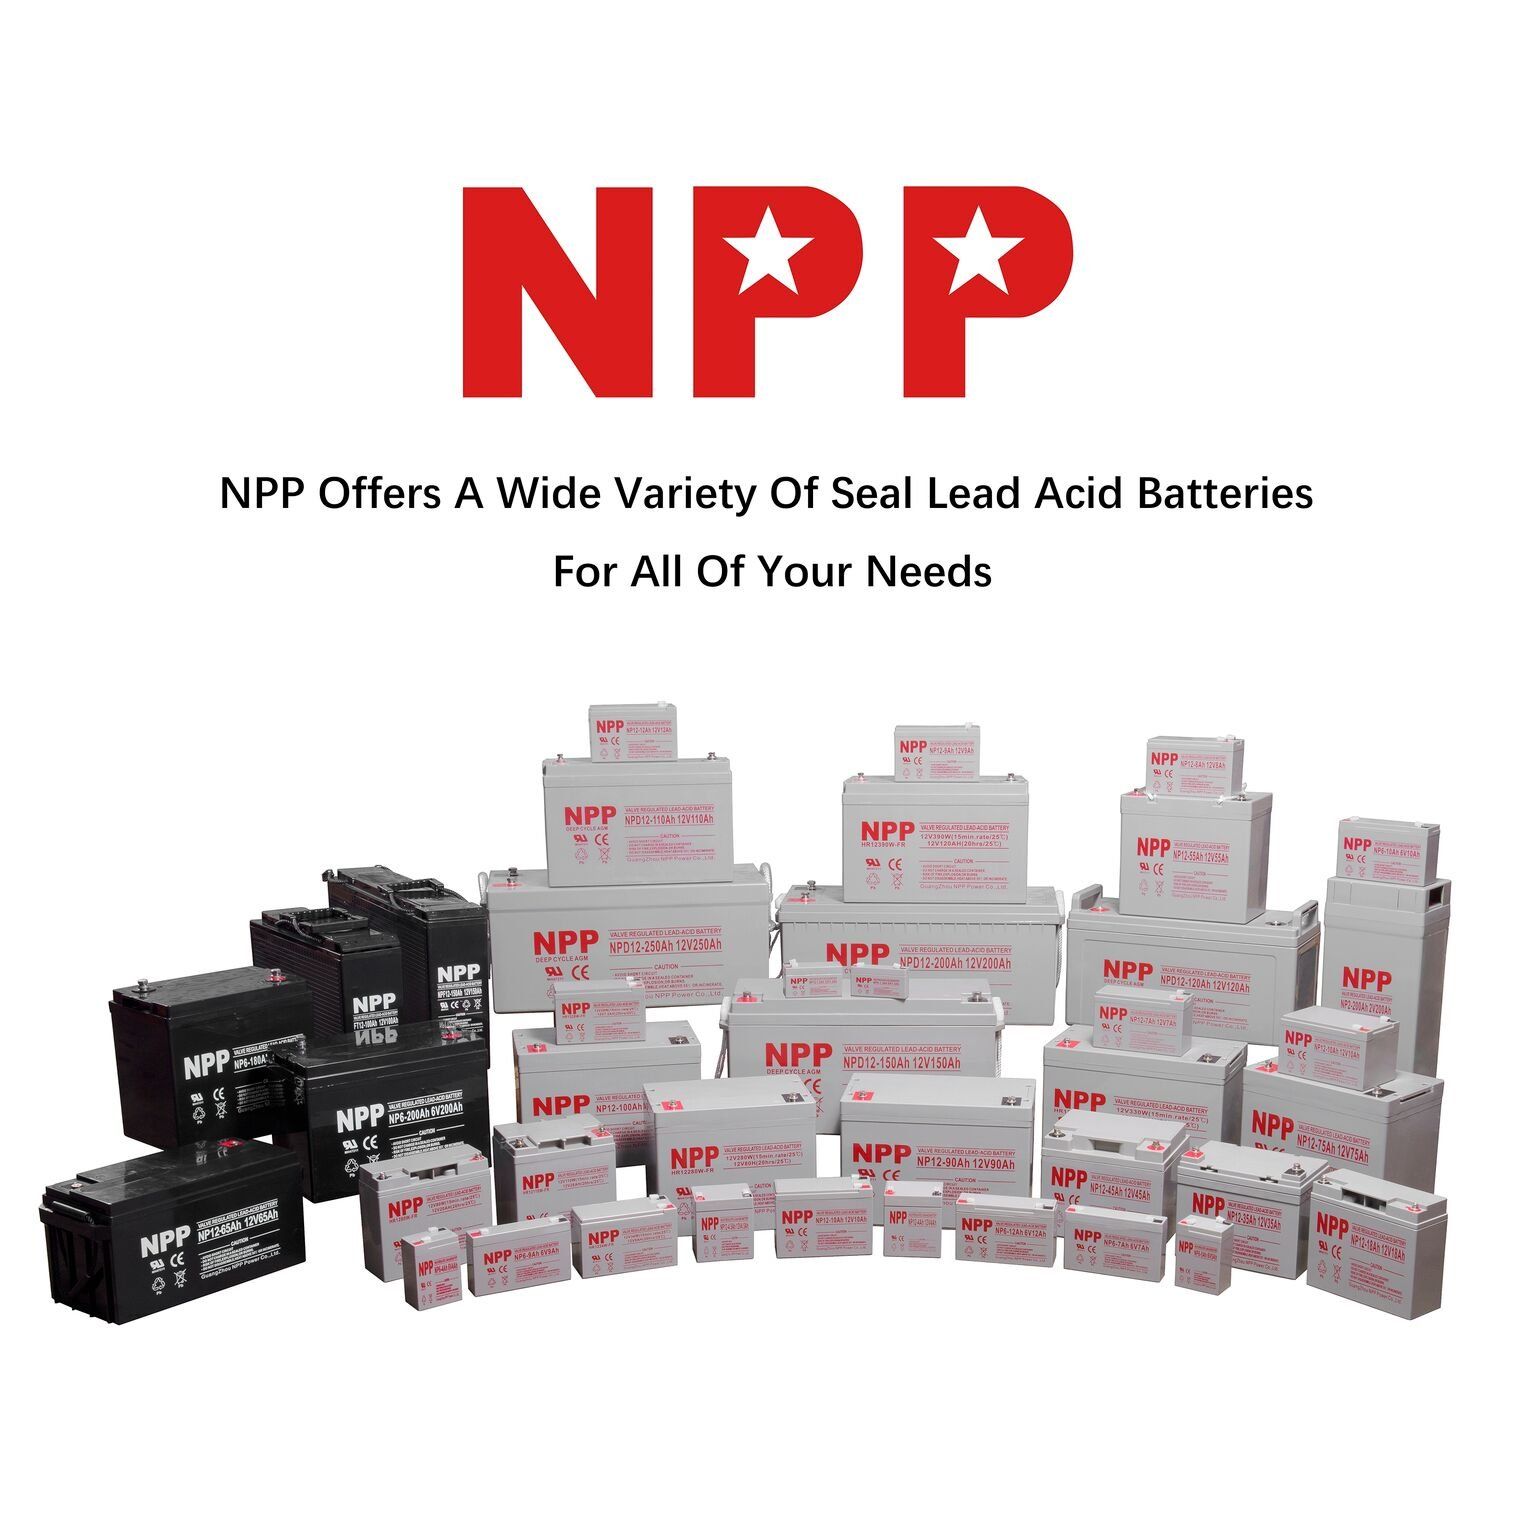 NPP HR1280W 12V 80W(15min.Rate/1.67V /Cell,12V 20Ah High Rate UPS Rechargeable Sead Lead Acid Battery with Button Style Terminals by NPP